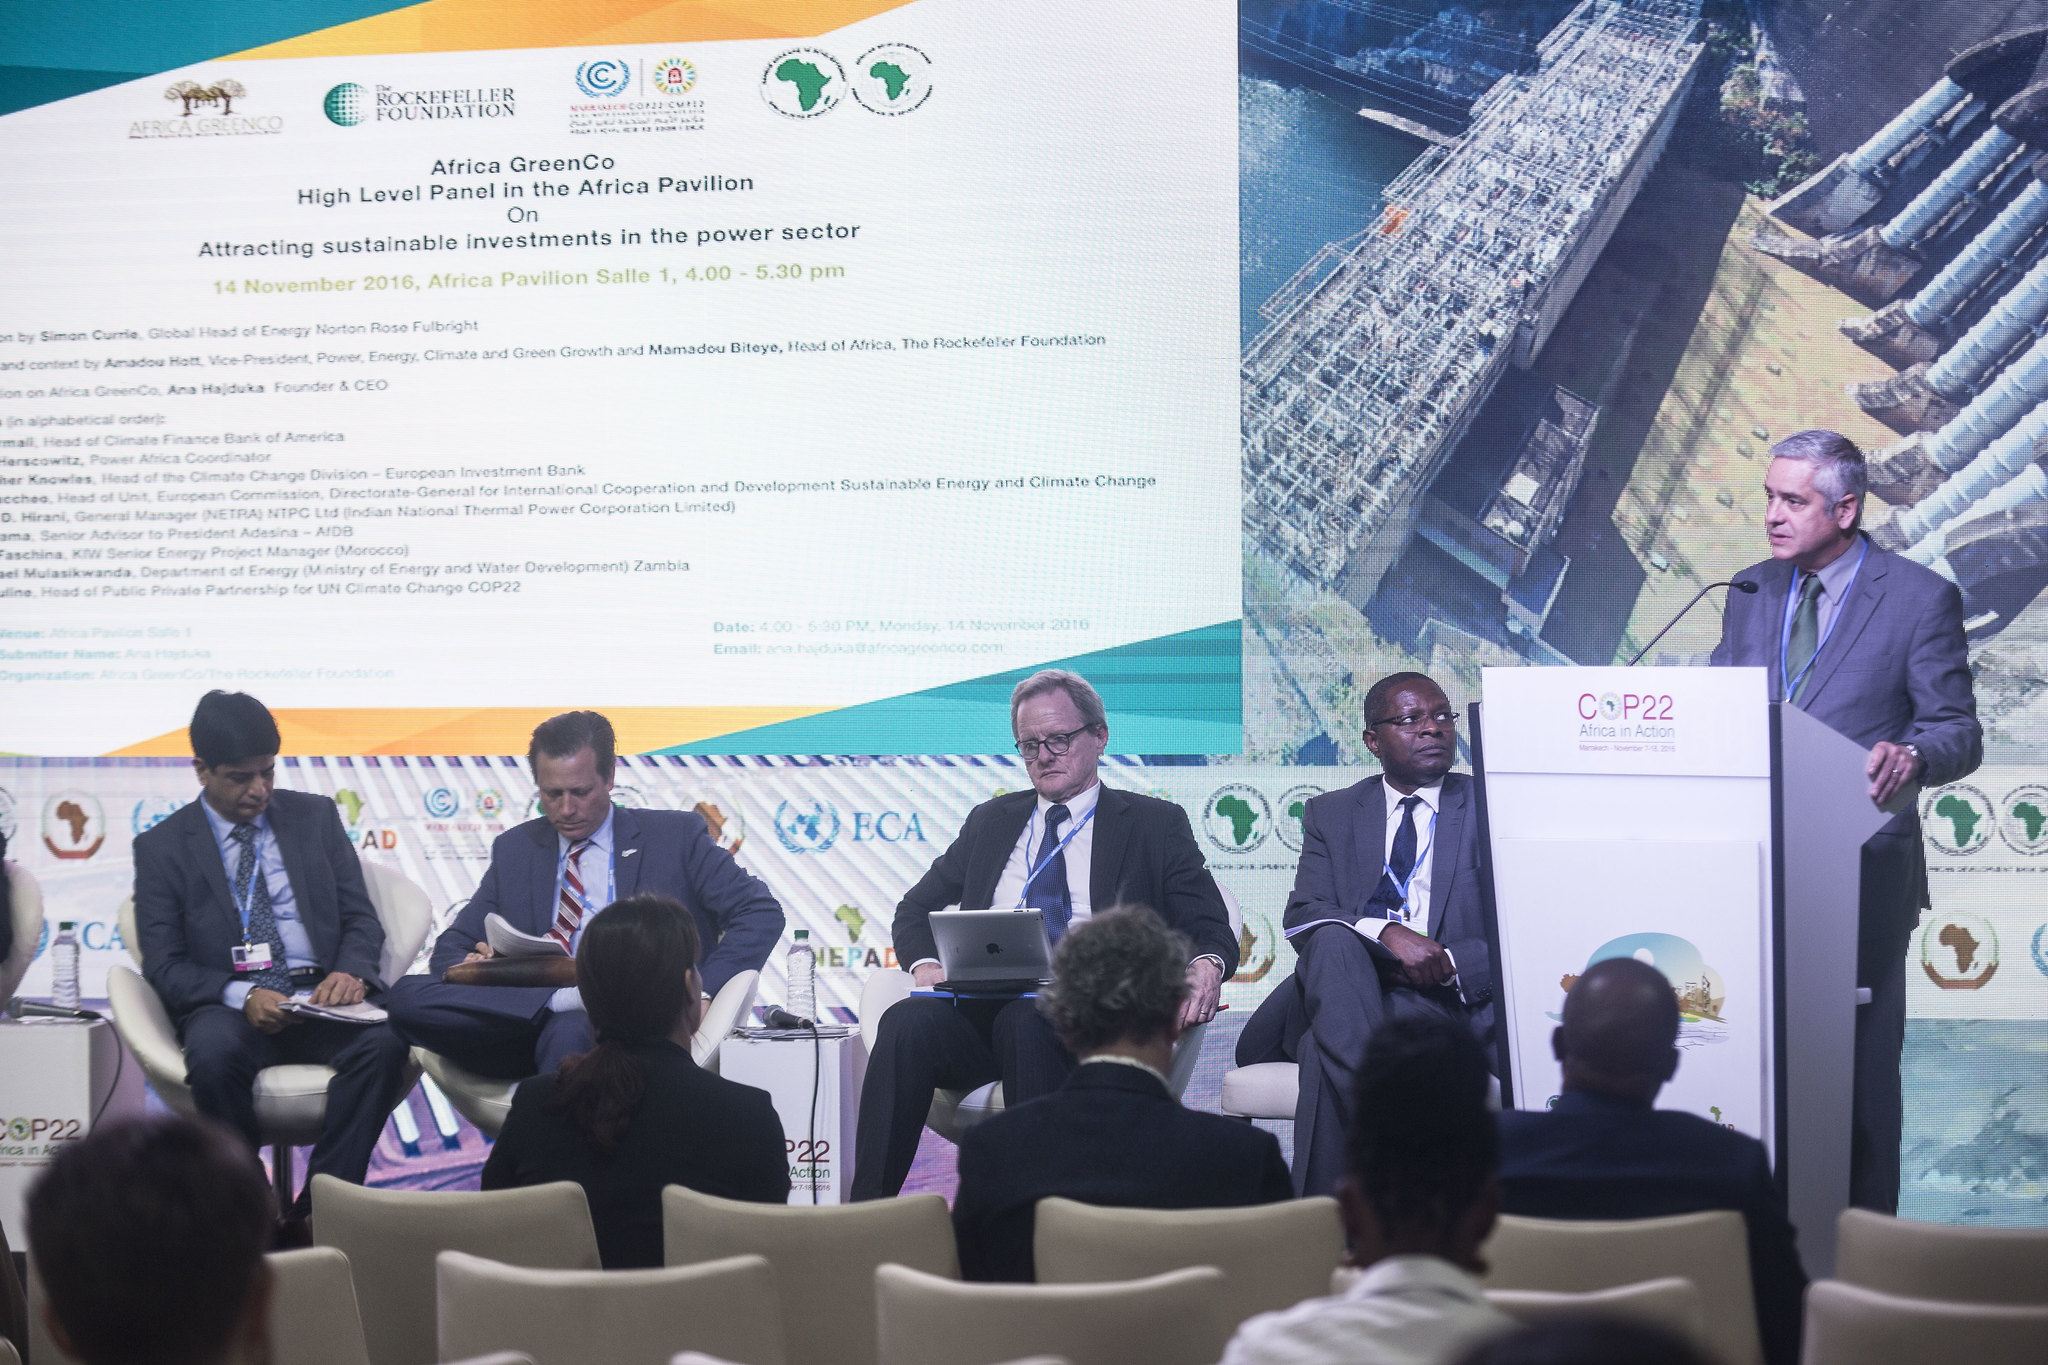 COP22 : Africa GreenCo/AfDB/Rockefeller Foundation: Attracting sustainable investments in the power sector, 14 November 2016